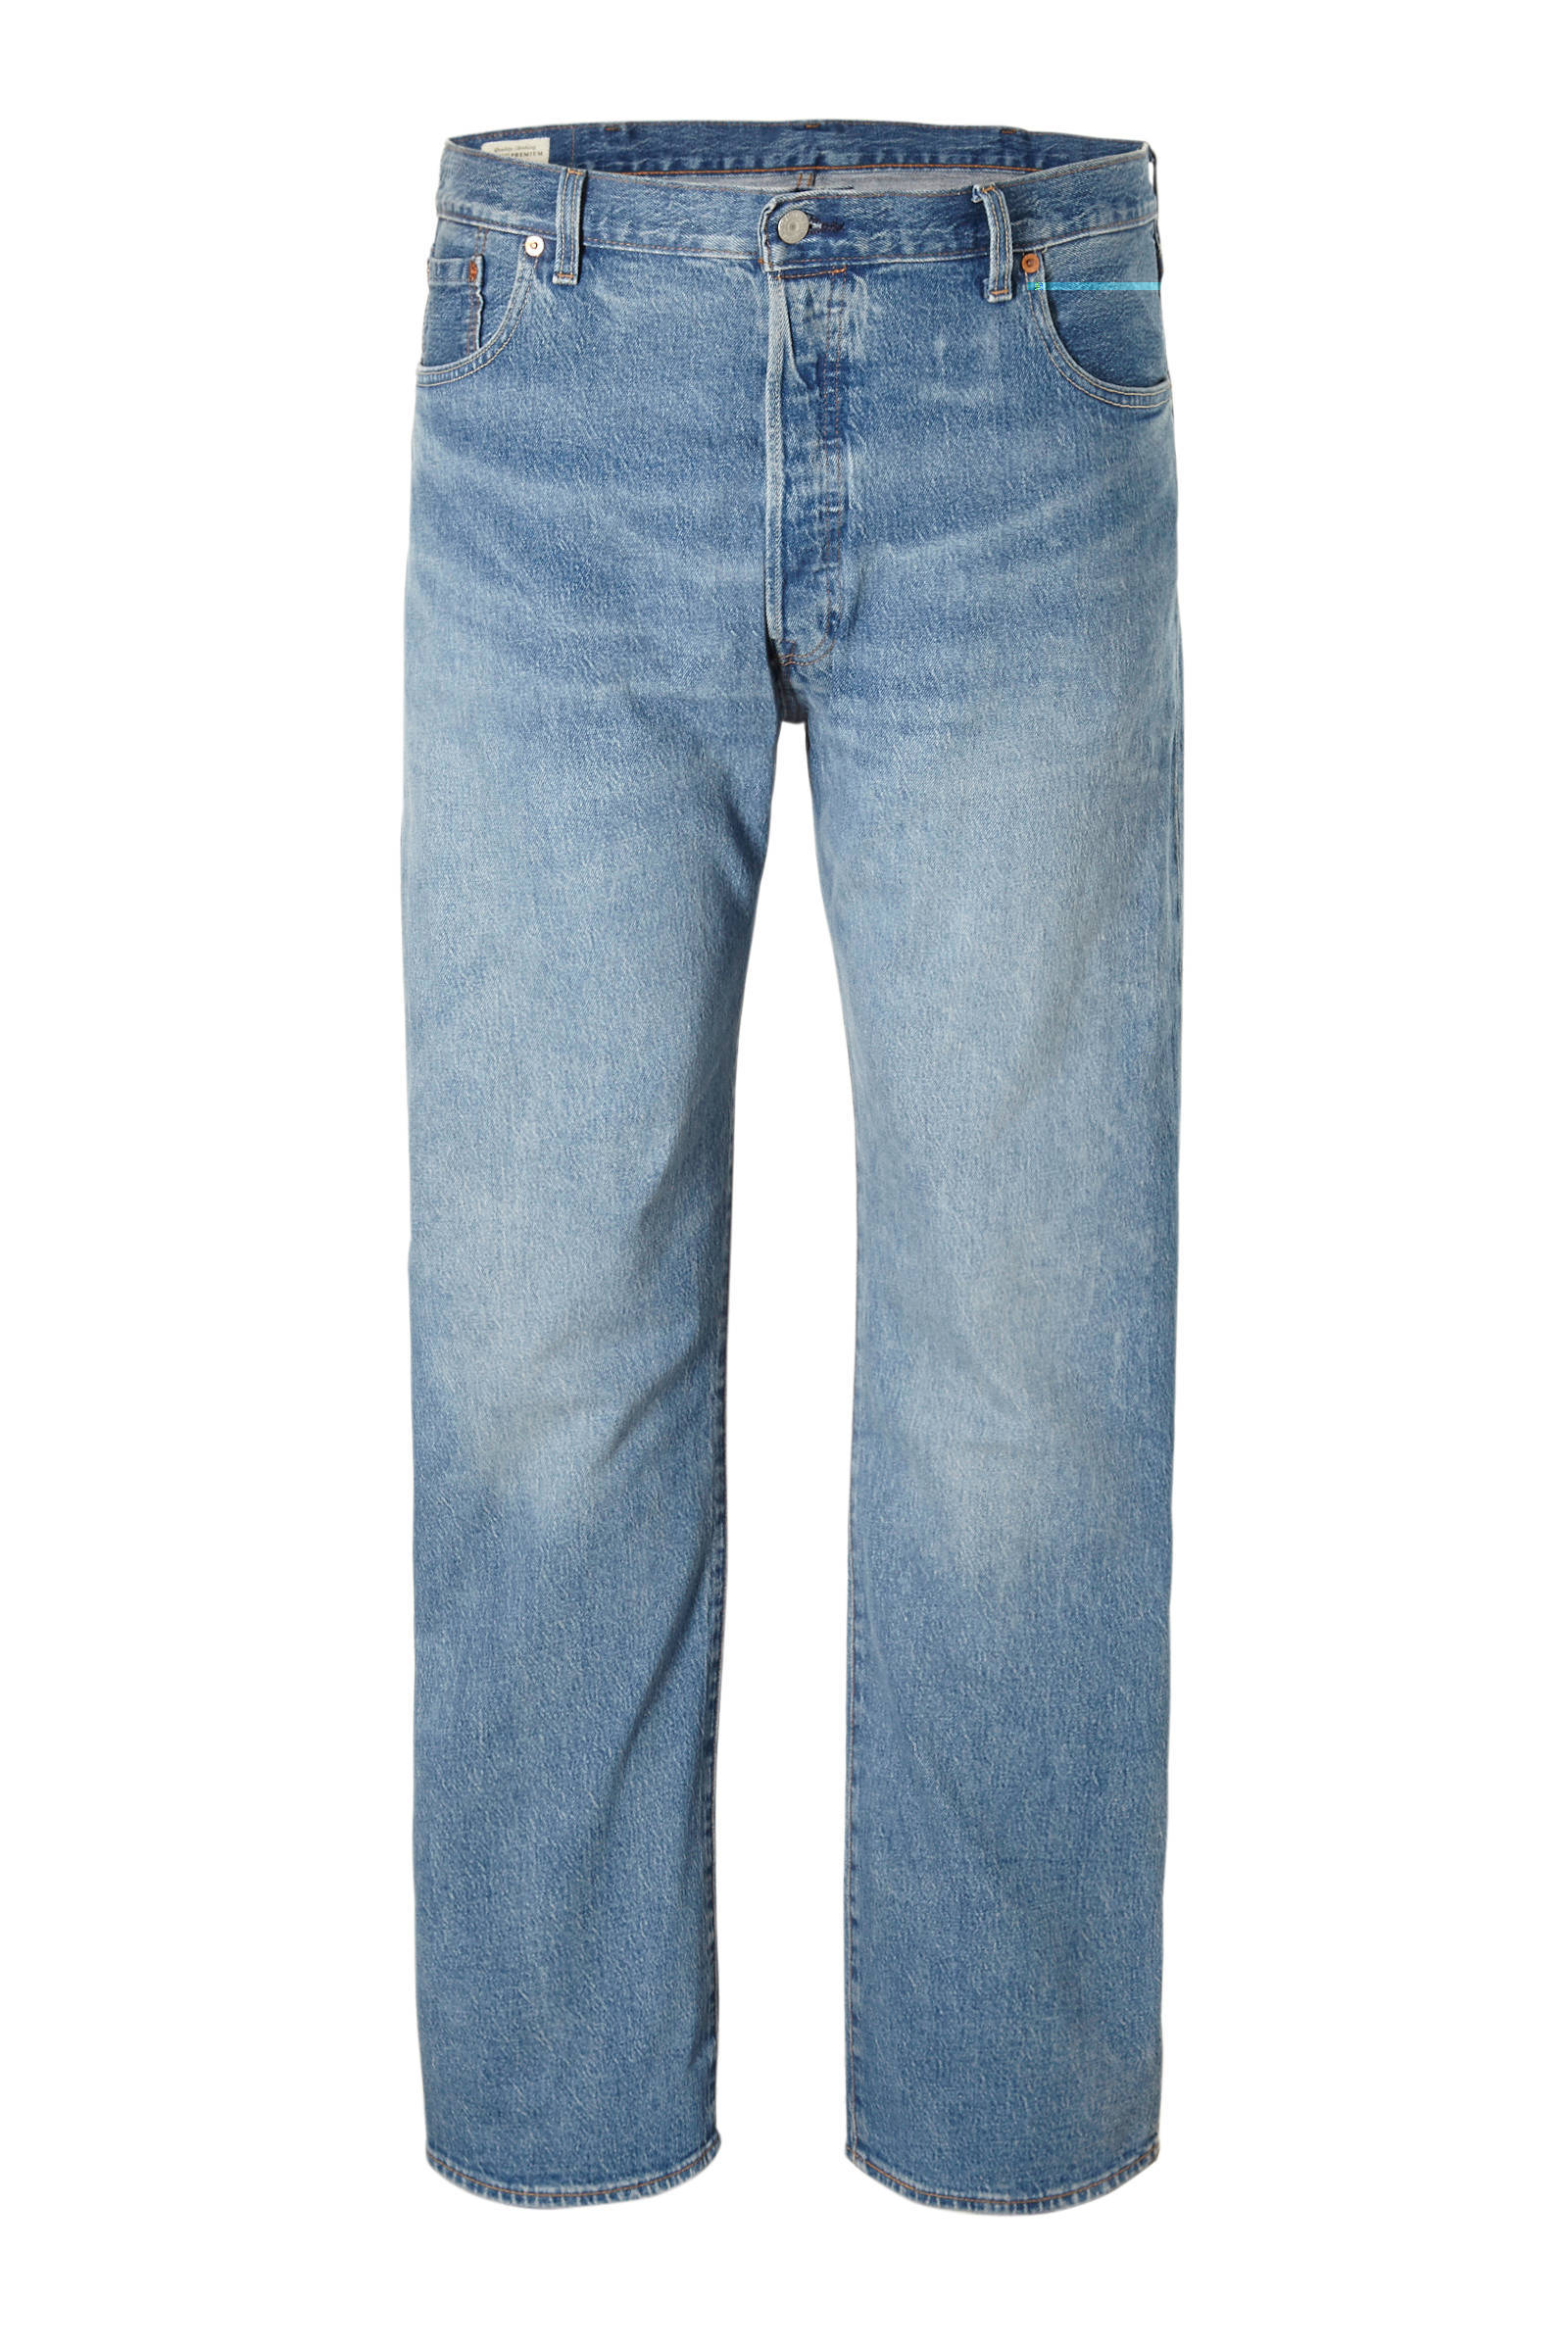 Levi's Big and Tall 501 Button Fly jeans  (heren)